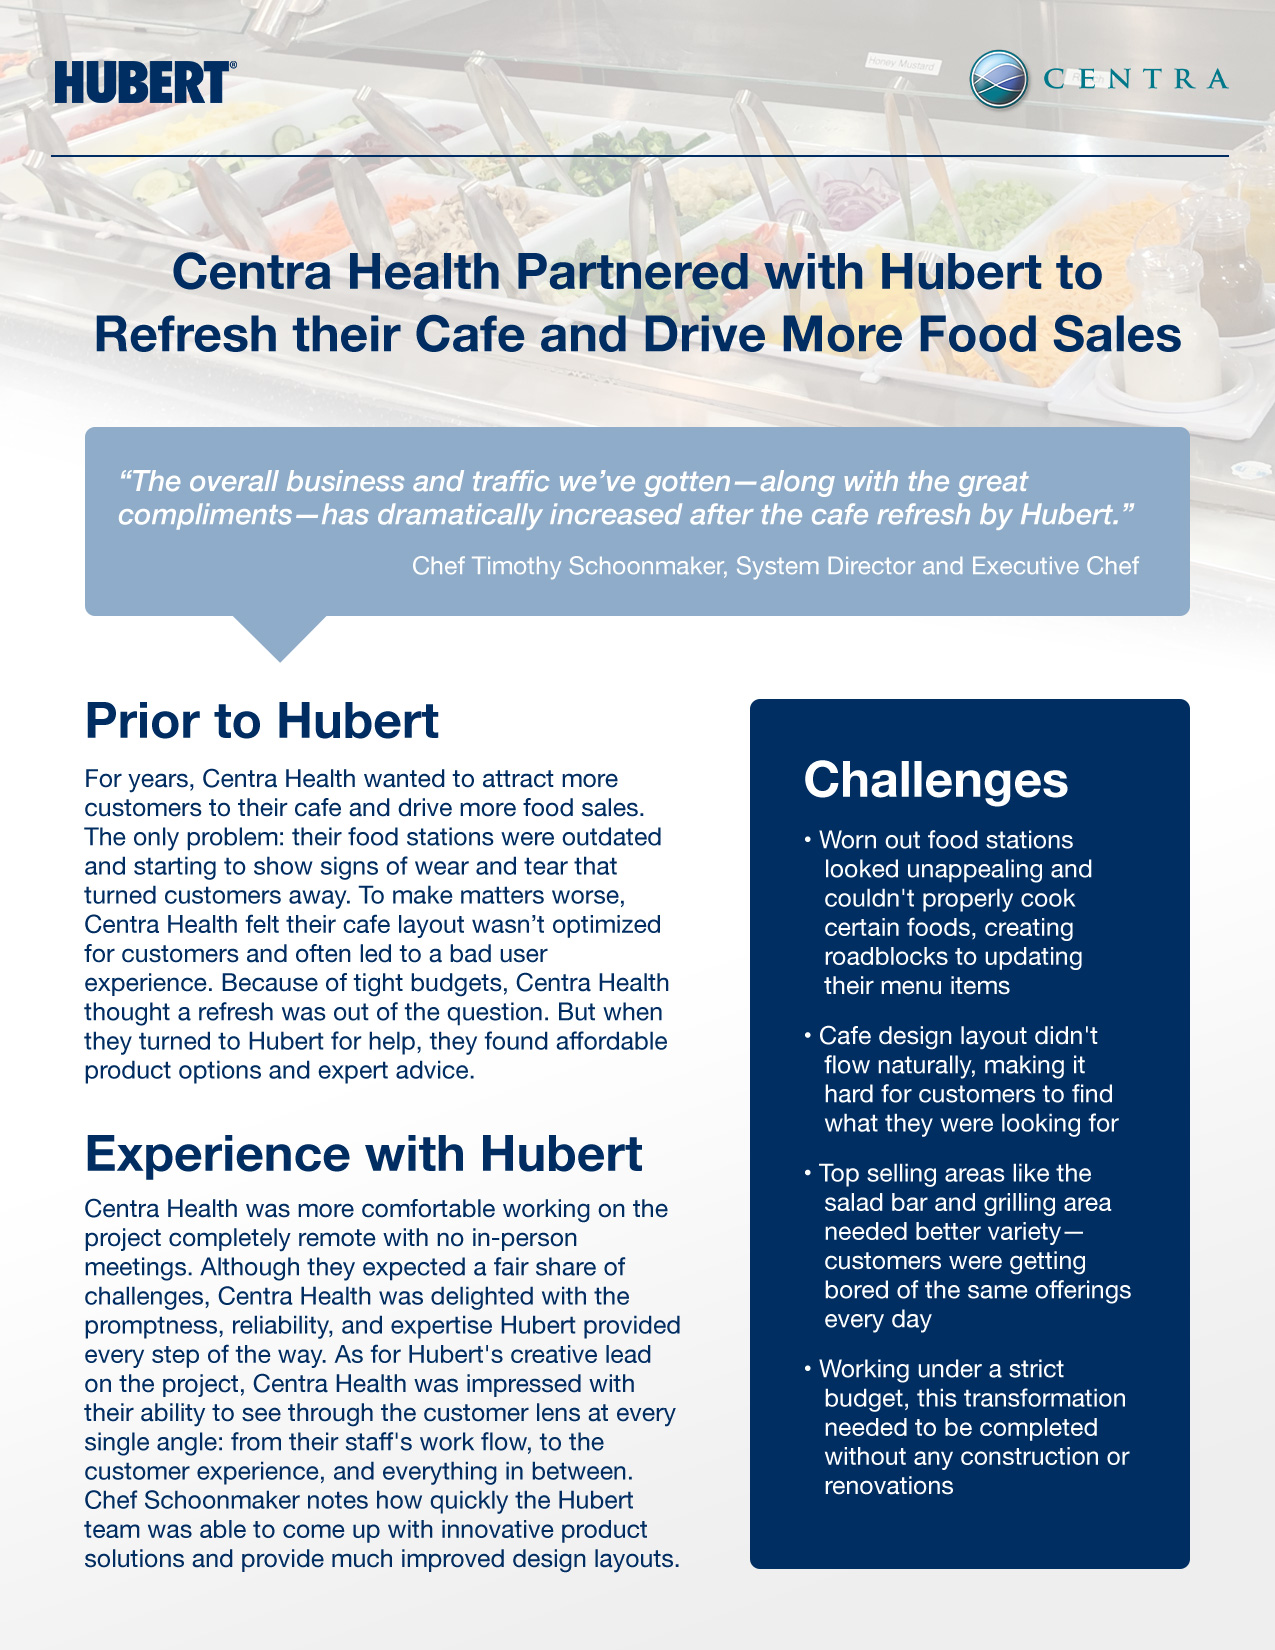 Centra Health Case Study - Page 1